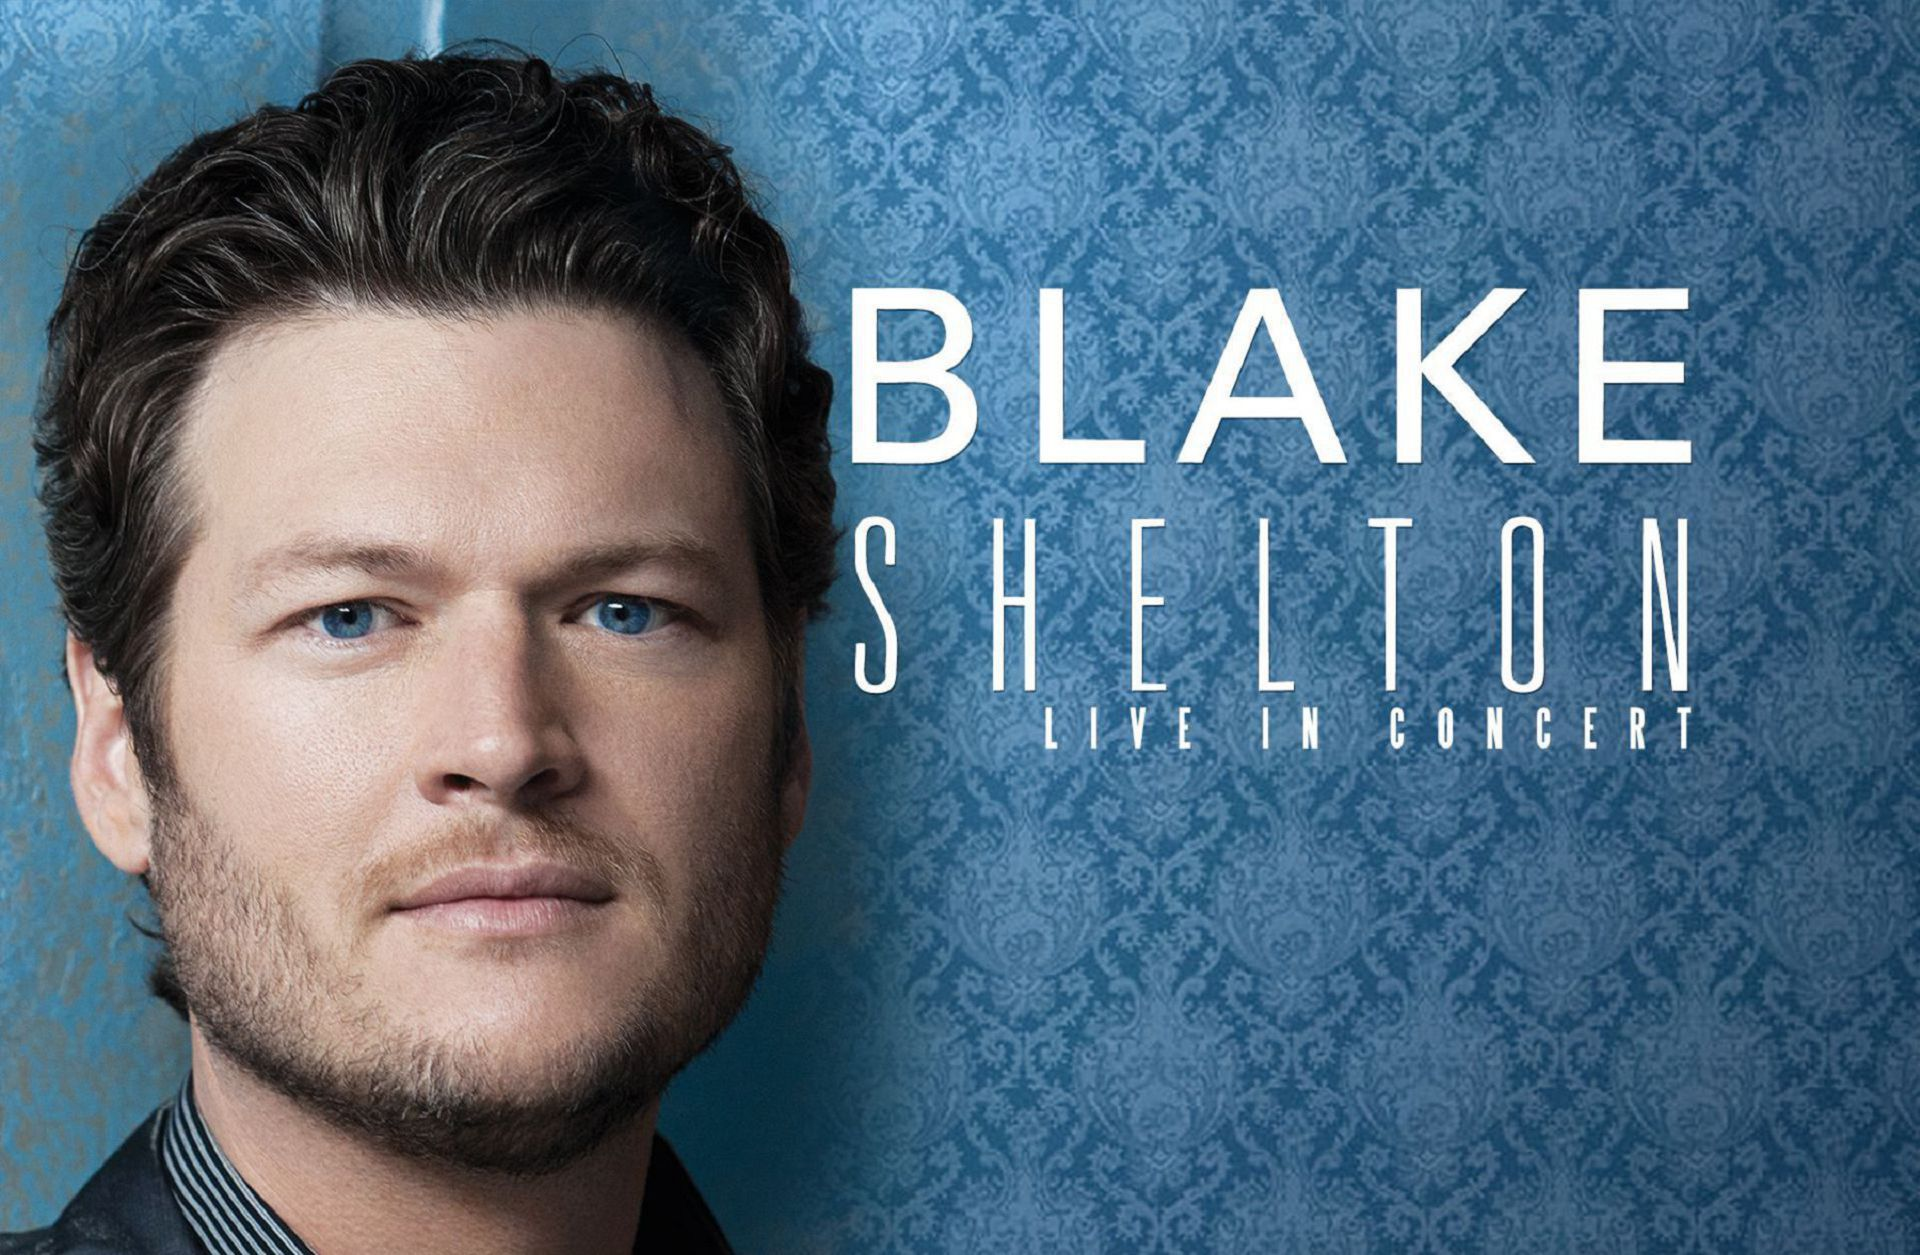 Blake Shelton Widescreen